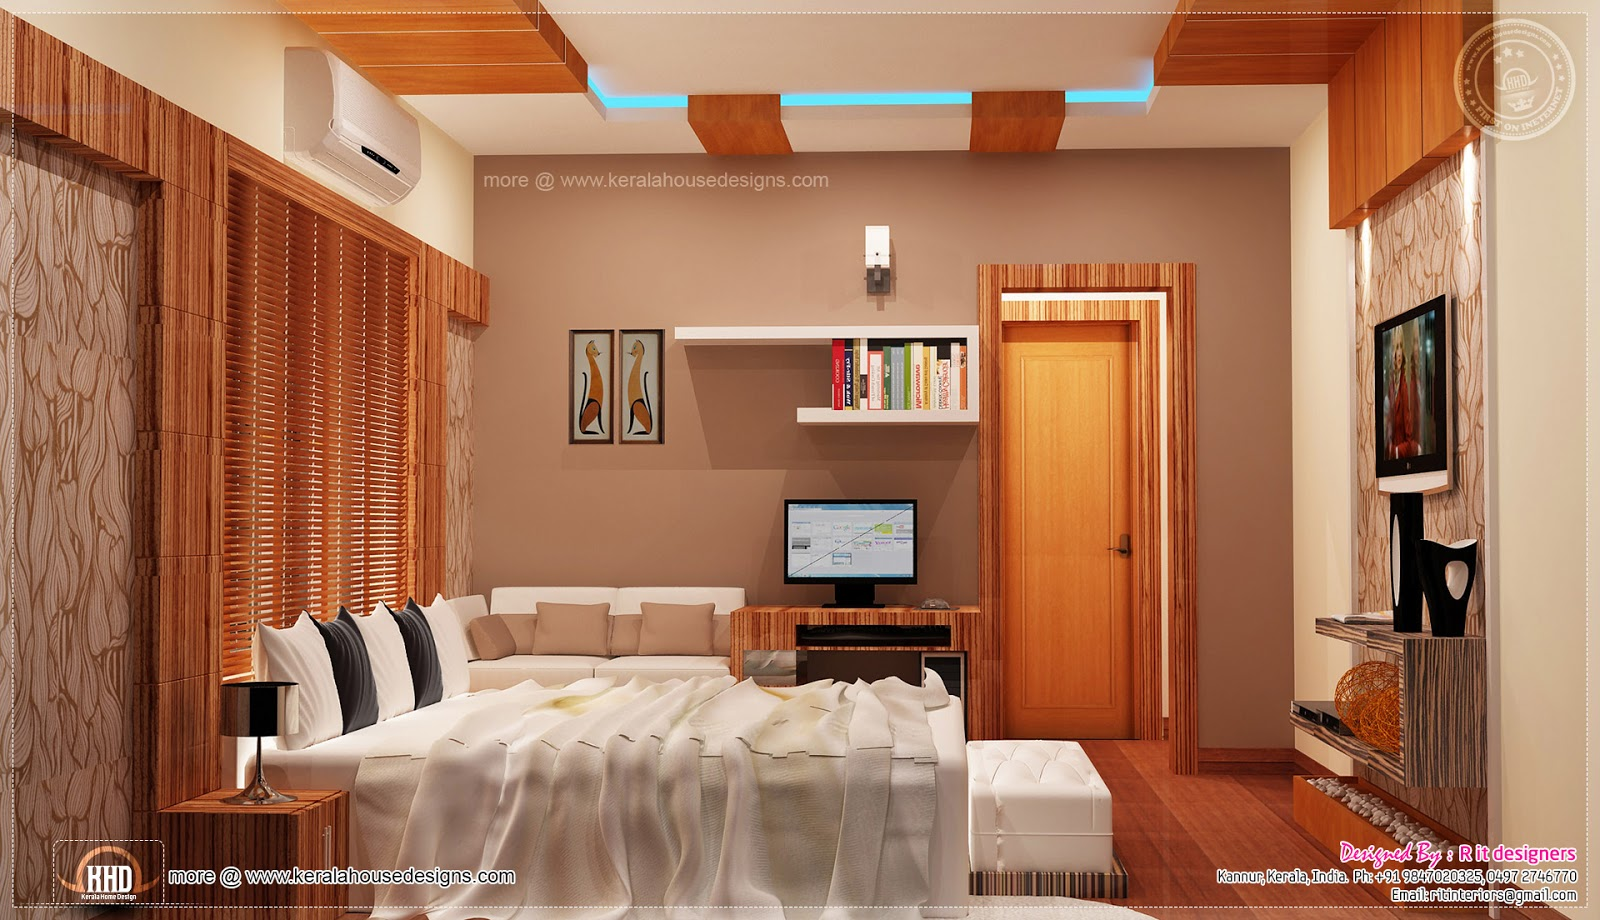 Home interior designs by rit designers kerala home for Bedroom designs tamilnadu